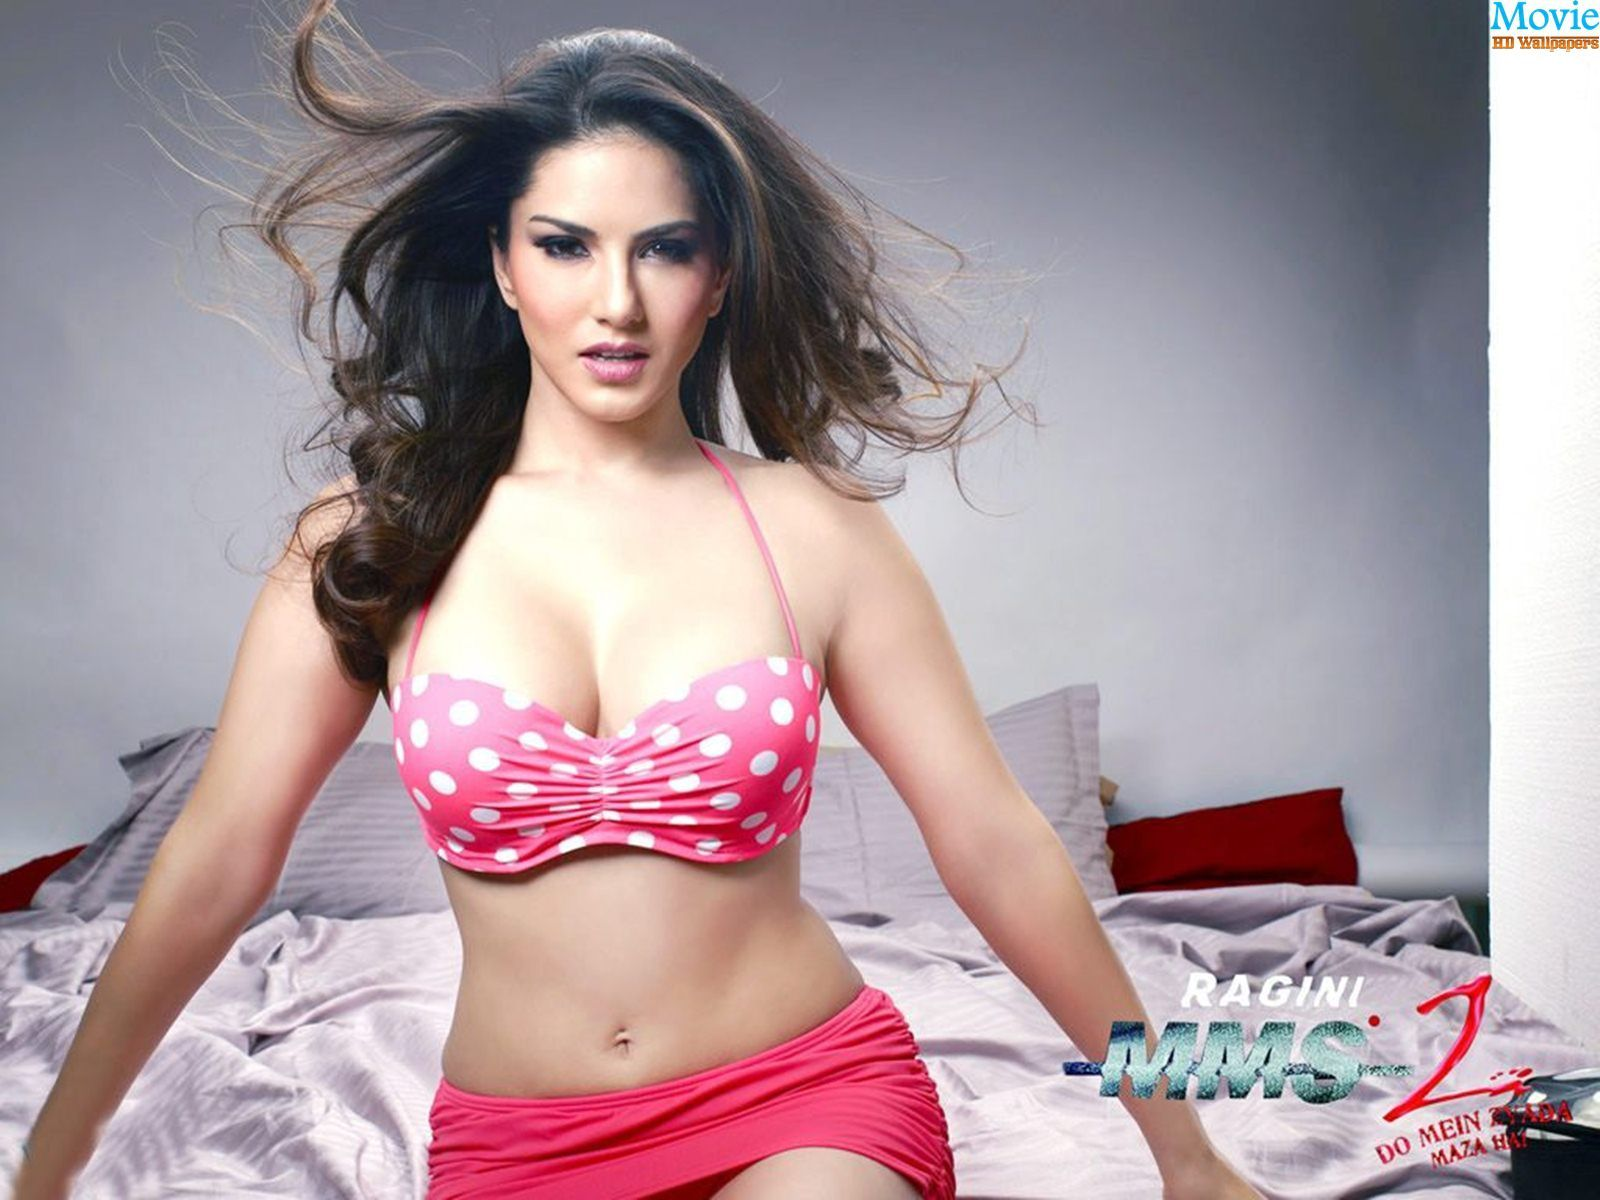 Ragini-MMS-2-Sunny-Leone-Hot-HD-Wallpapers.jpg (1600×1200 ...